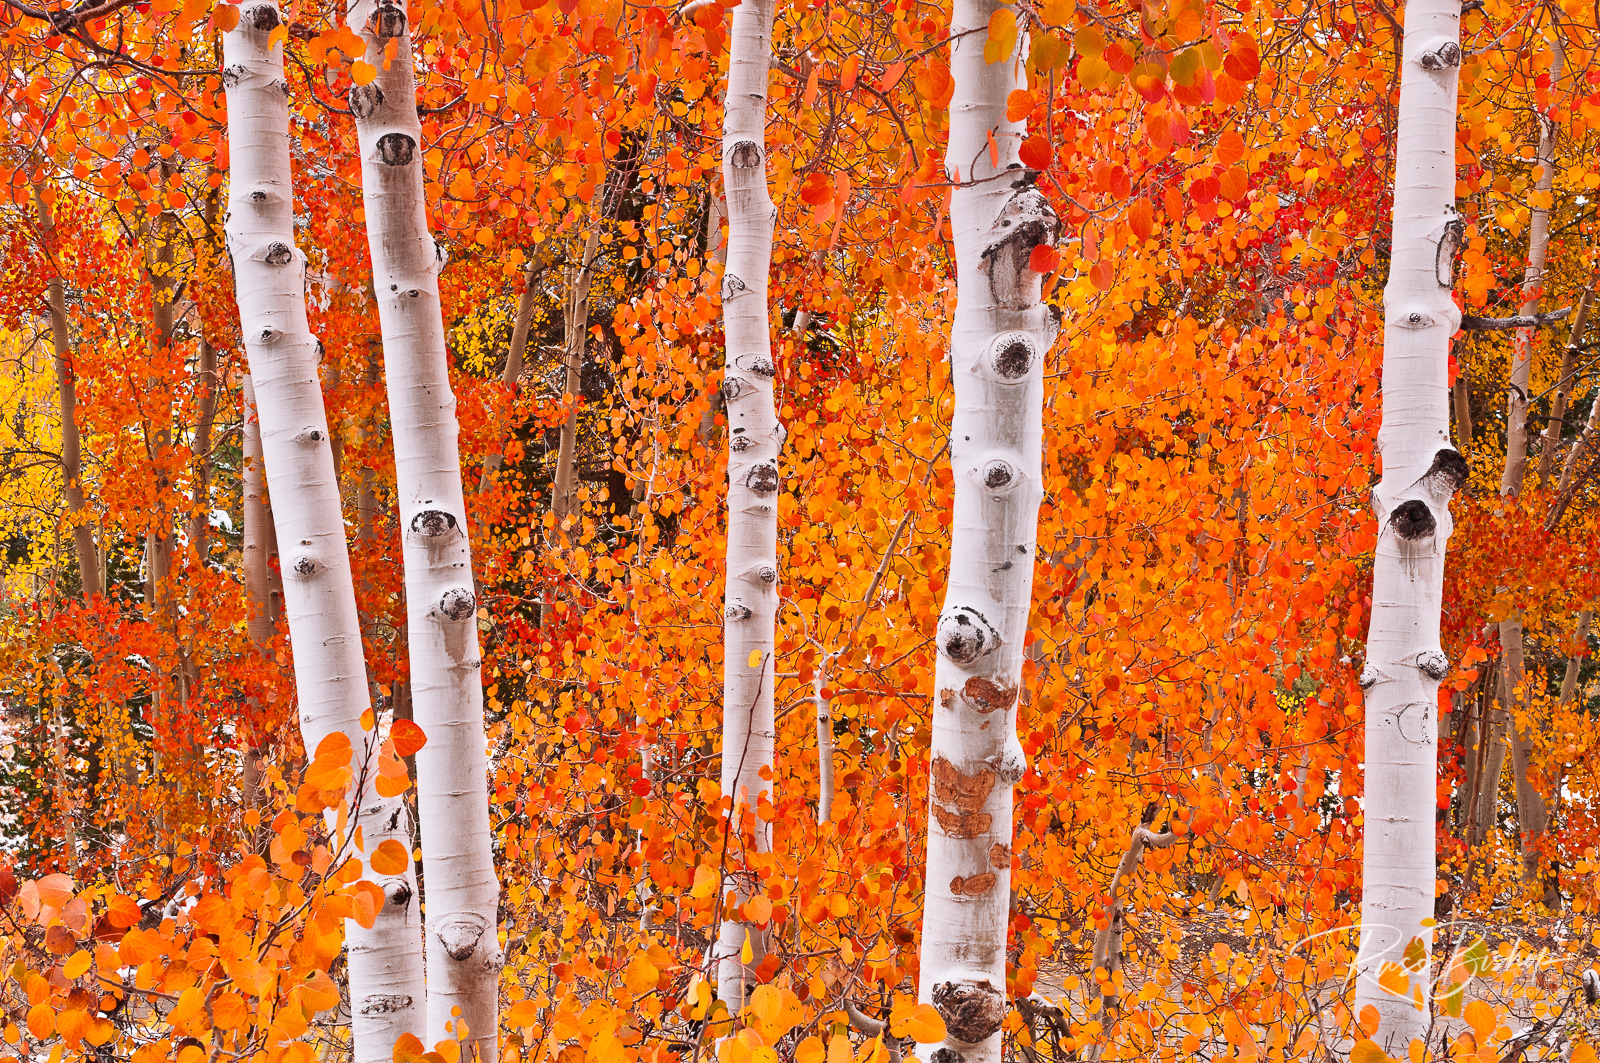 Fresh snow on fall aspens, Inyo National Forest, California